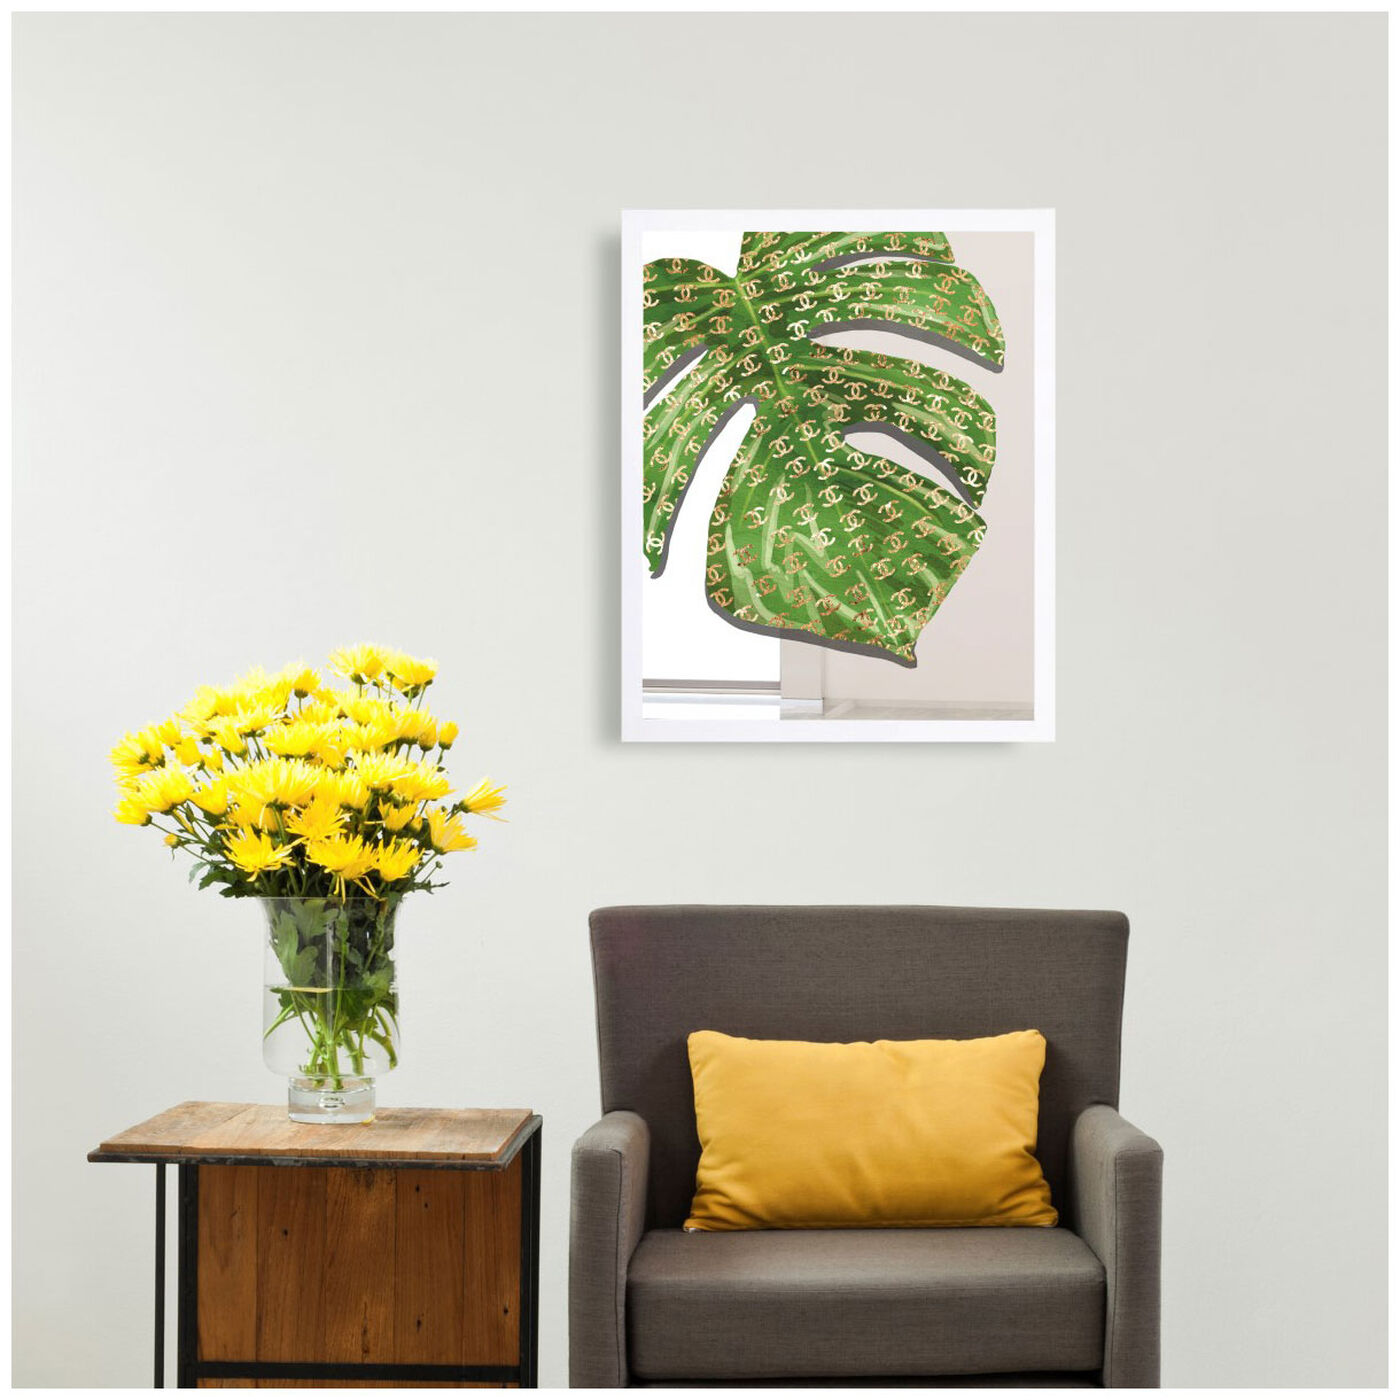 Hanging view of Fashion Leaves I featuring fashion and glam and fashion art.